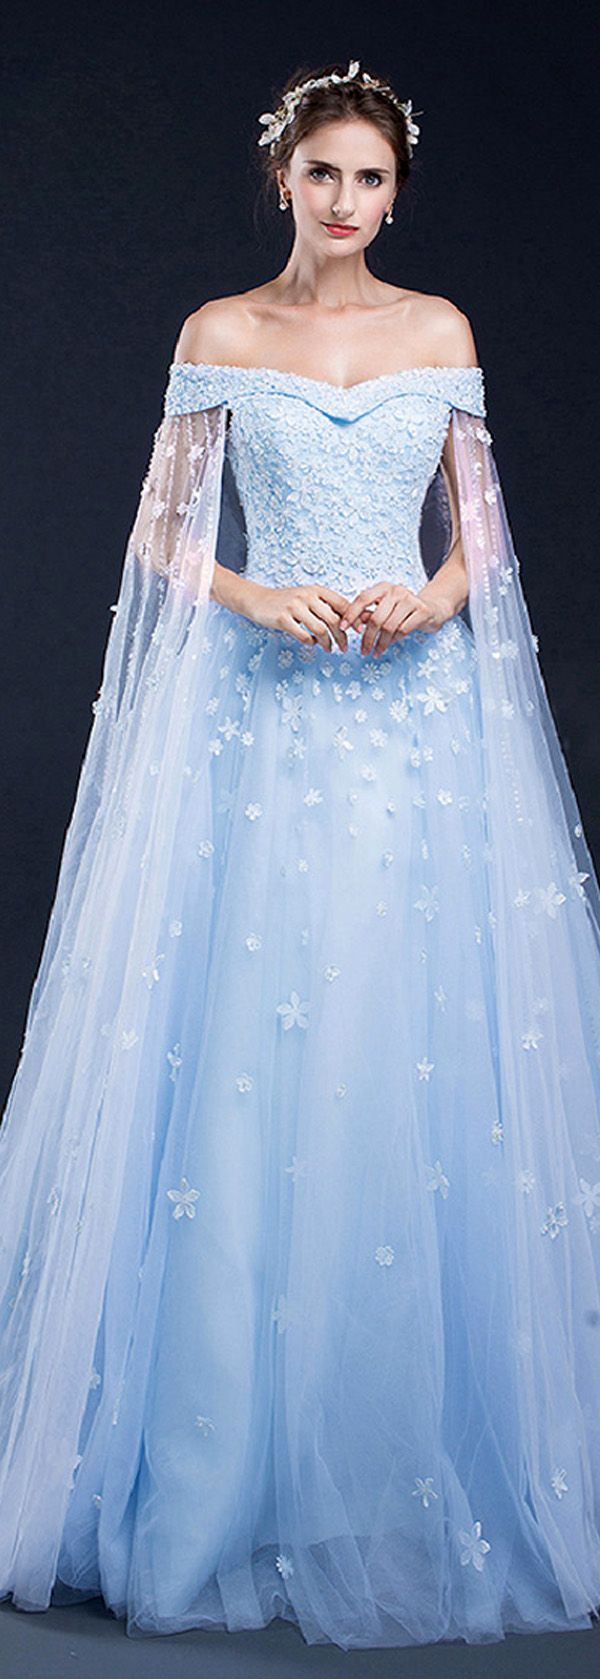 Marvelous Tulle Off-the-shoulder Neckline A-line Prom Dresses With Beaded Lace Appliques